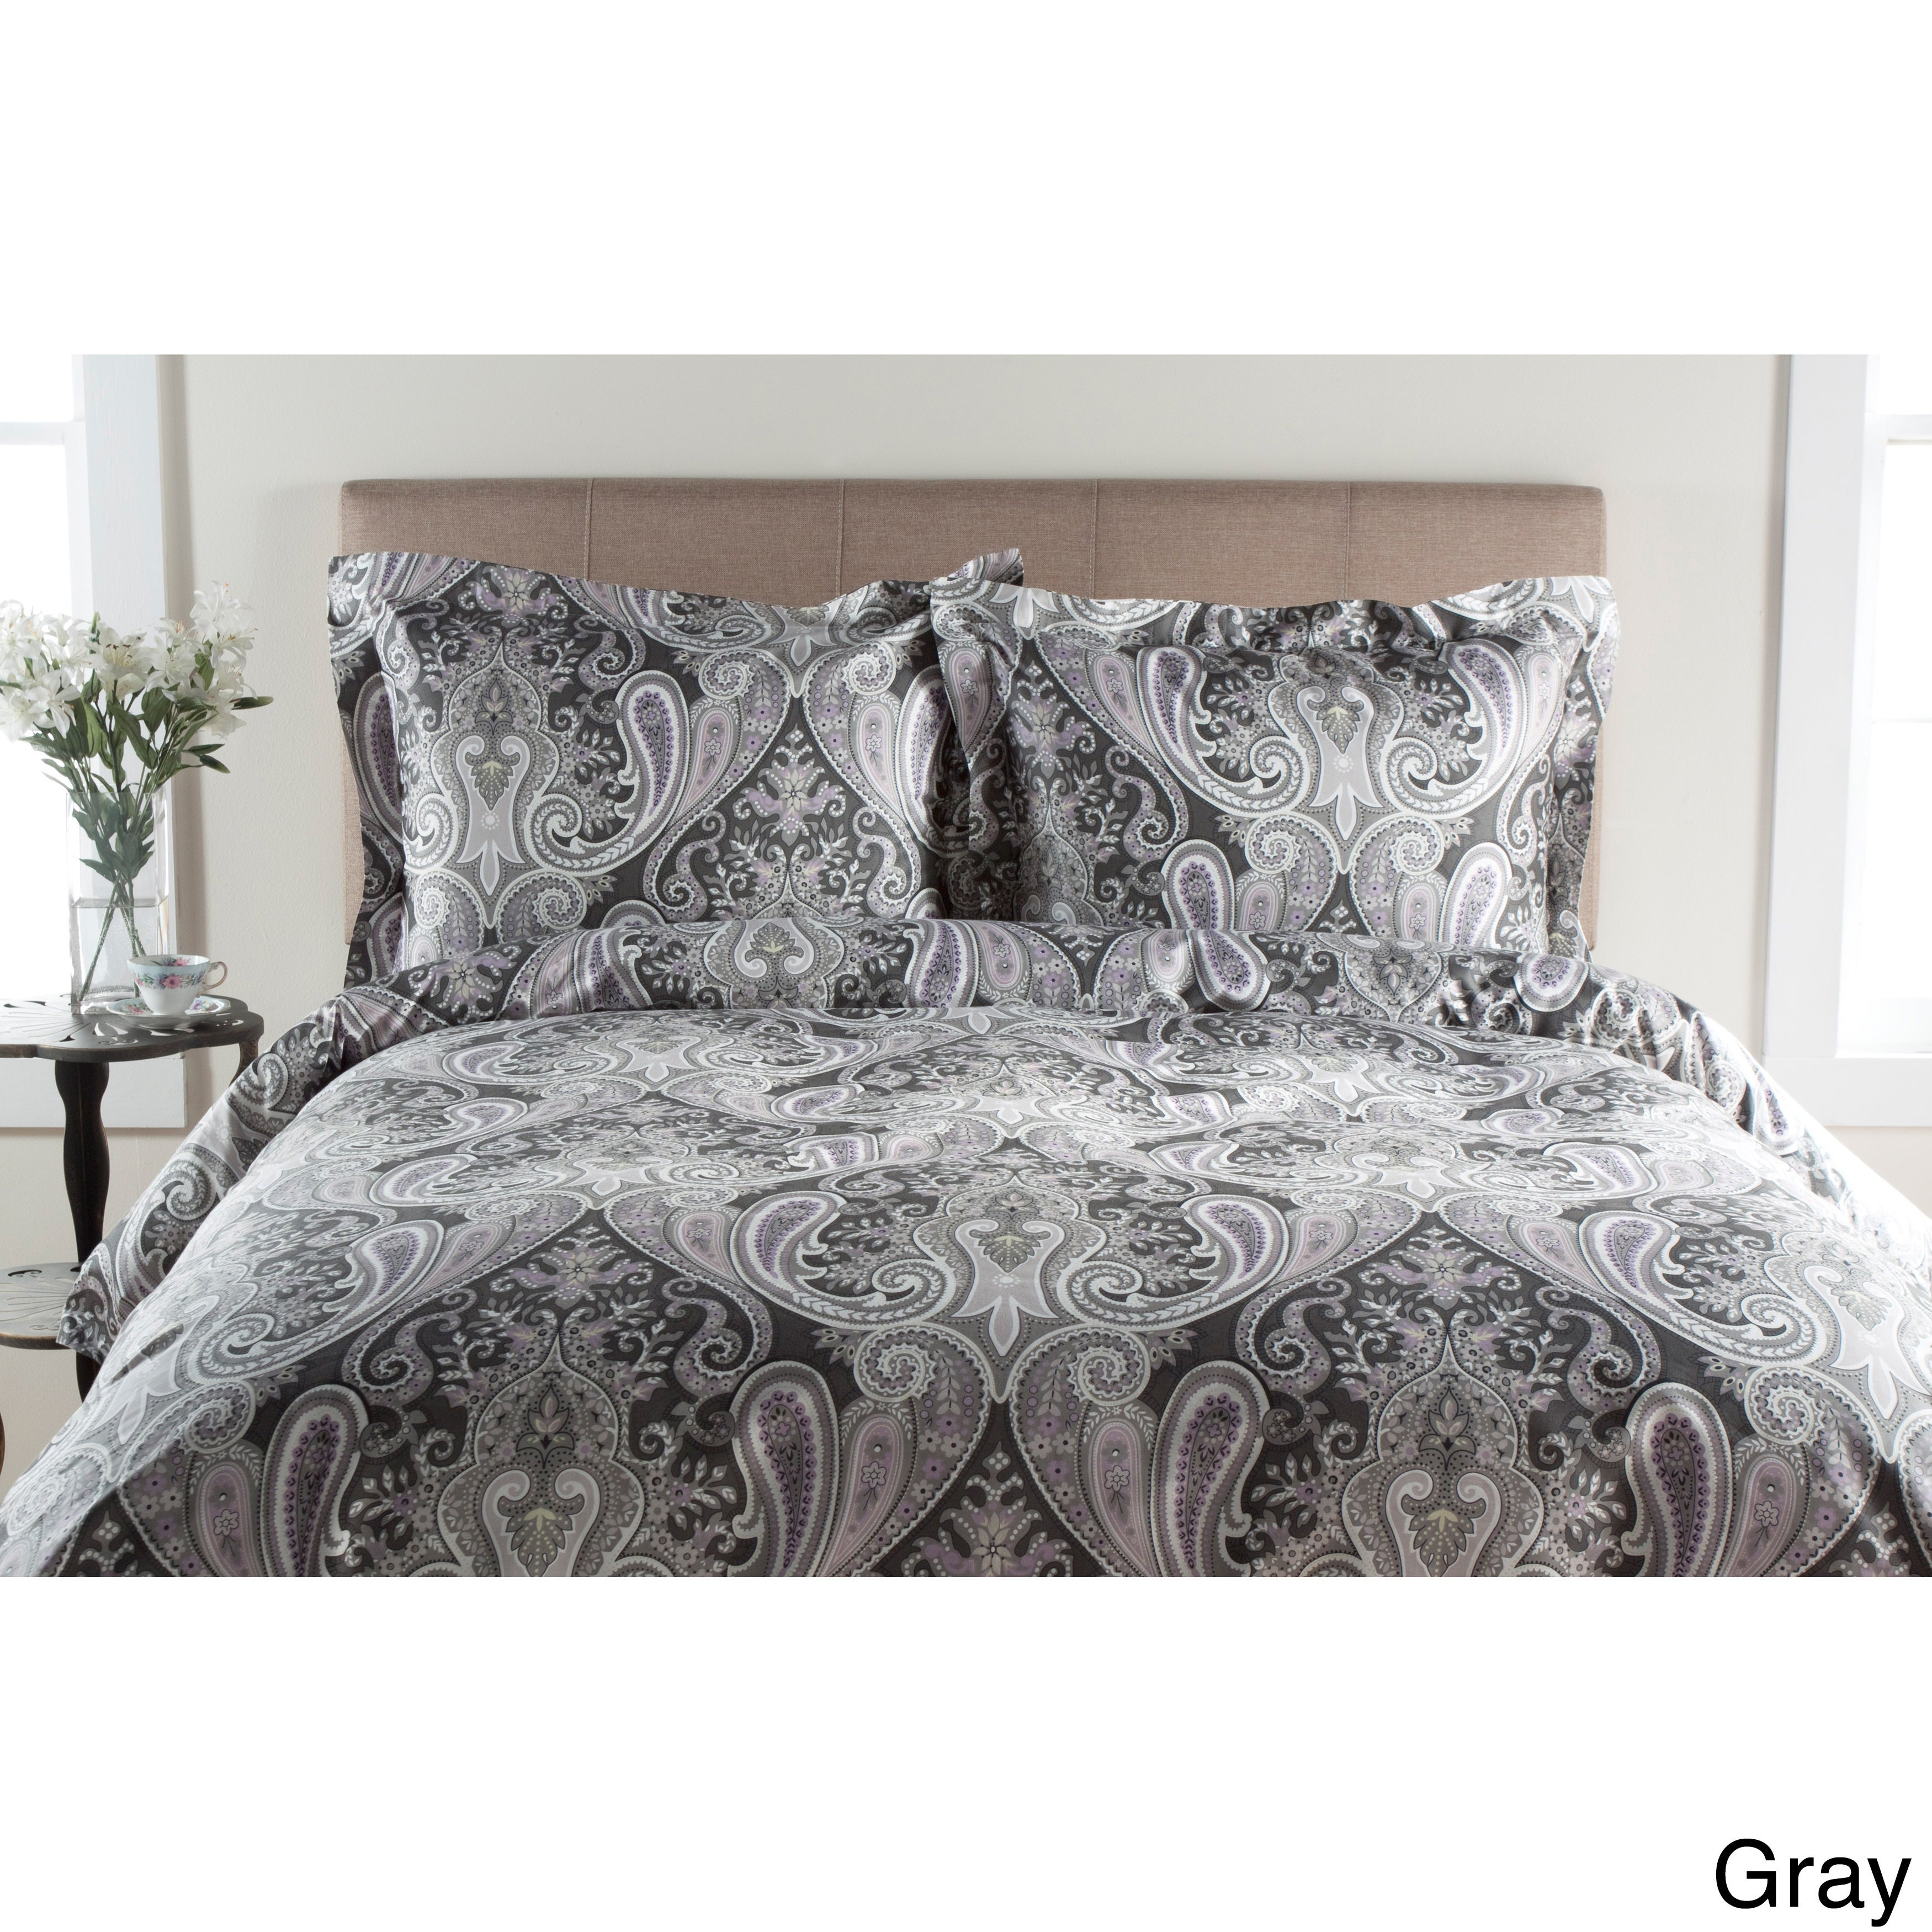 bed quiltcover reilly shr duvet gray sheridan fog quilt cover set